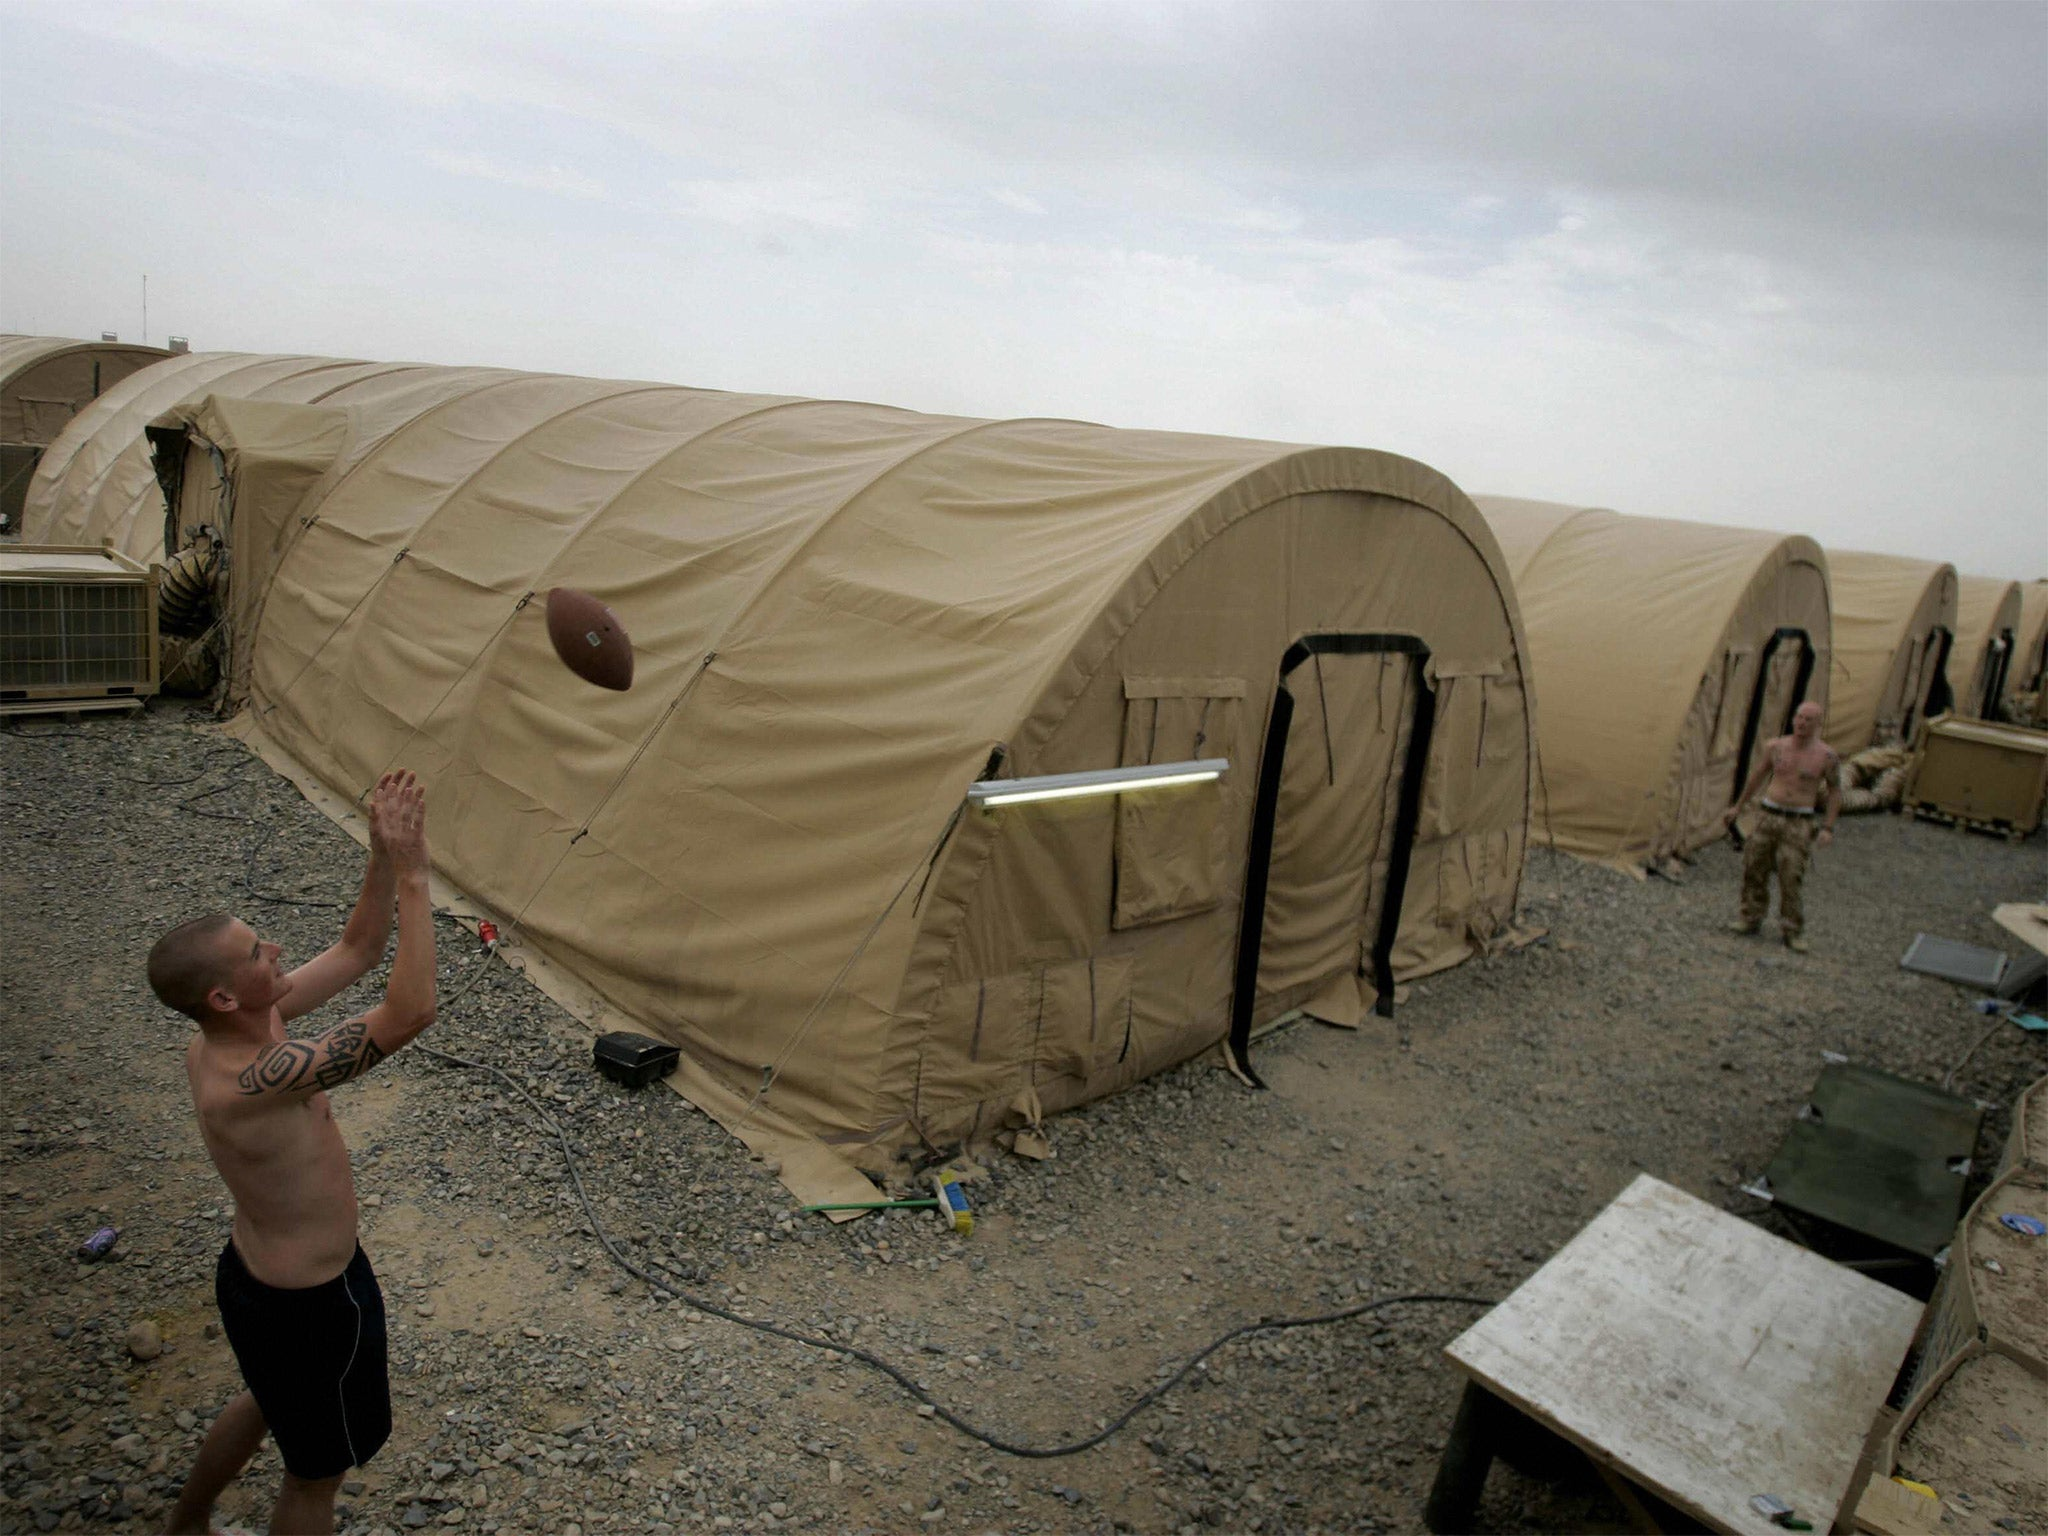 MoD sells charity huge army tents for Iraqis fleeing Isis but RAF wonu0027t fly it there | The Independent & MoD sells charity huge army tents for Iraqis fleeing Isis but RAF ...